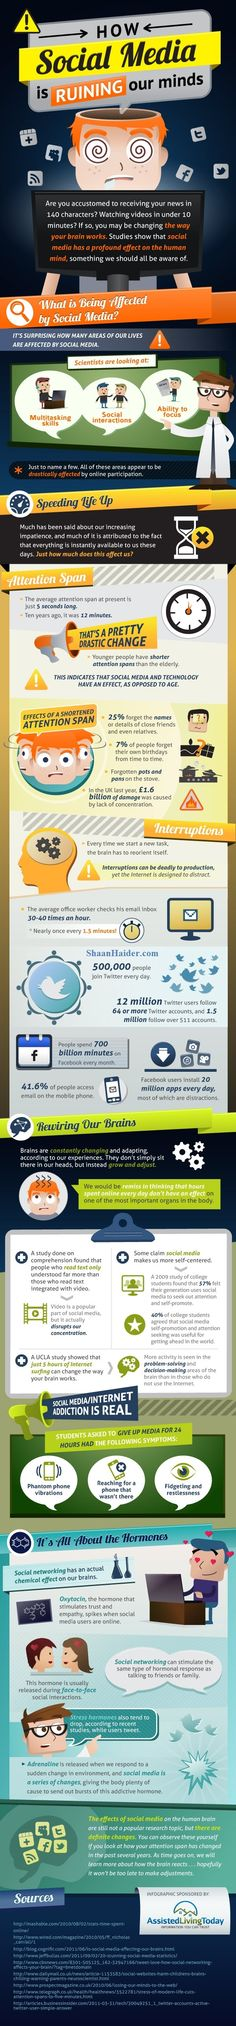 How Social Media is Ruining Our Minds (Infographic)